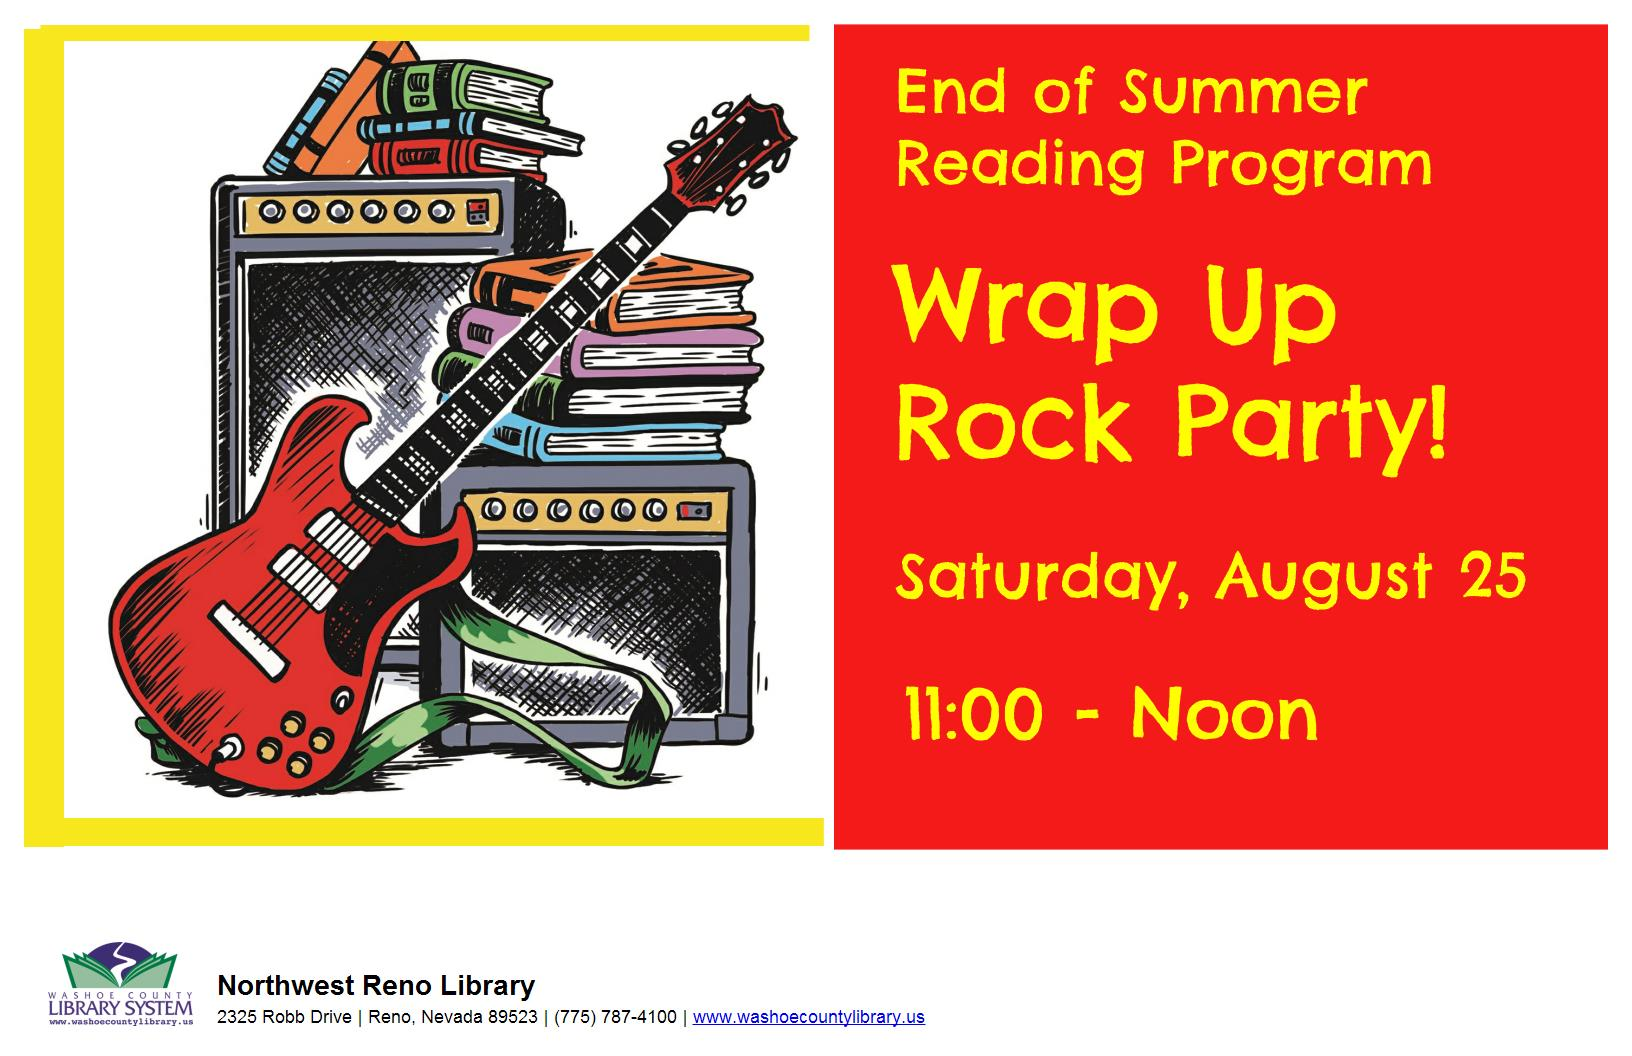 Summer Reading Program Wrap-Up Party